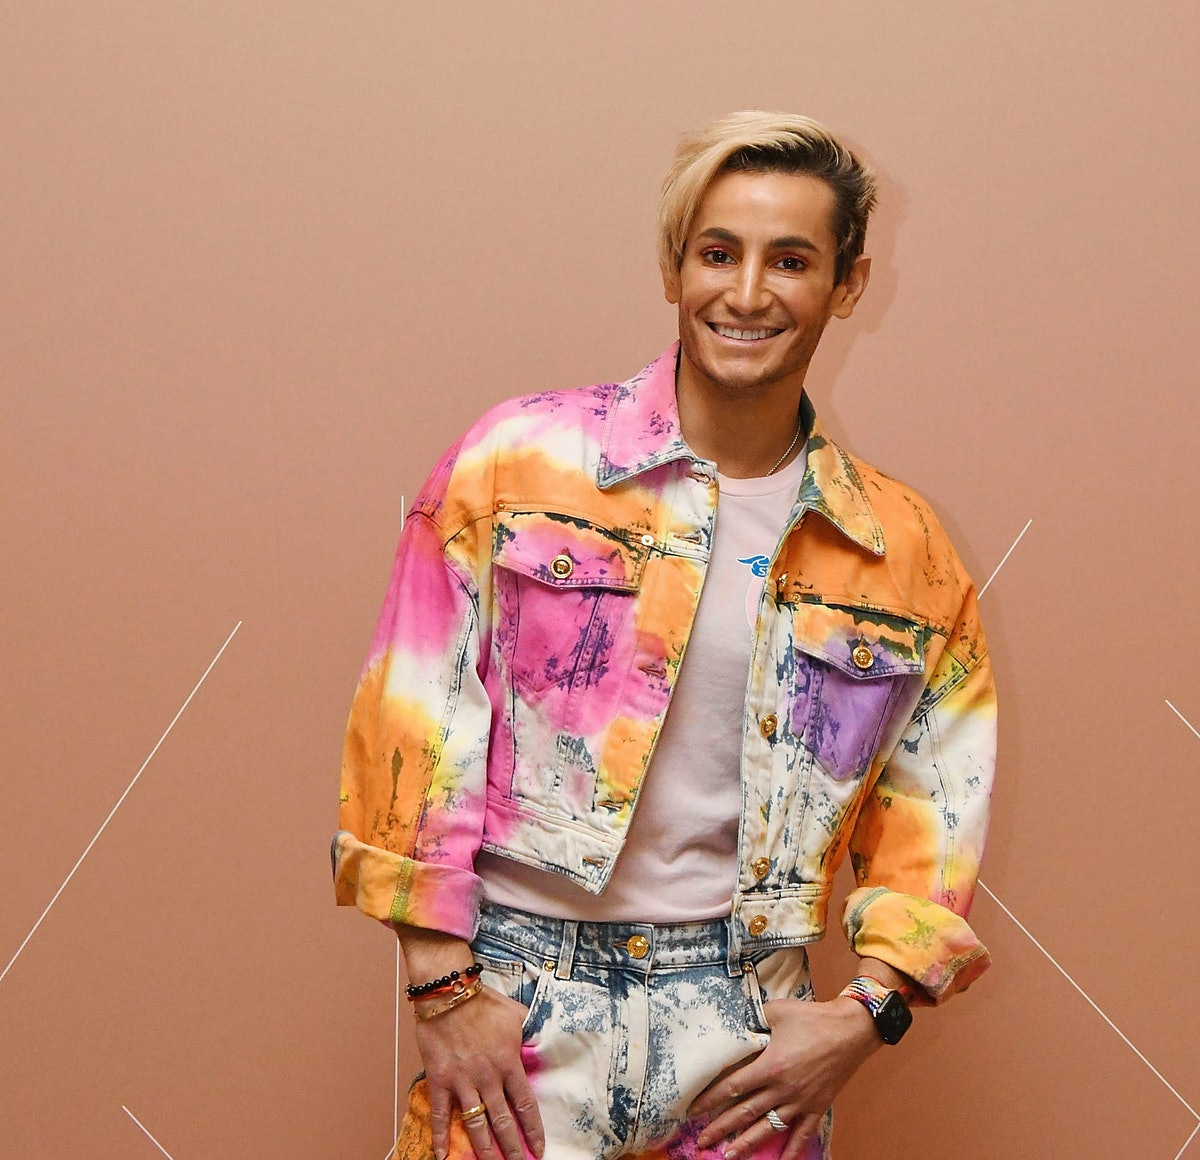 Frankie Grande keeps his skin looking clear and healthy with a surprisingly simple skin care routine